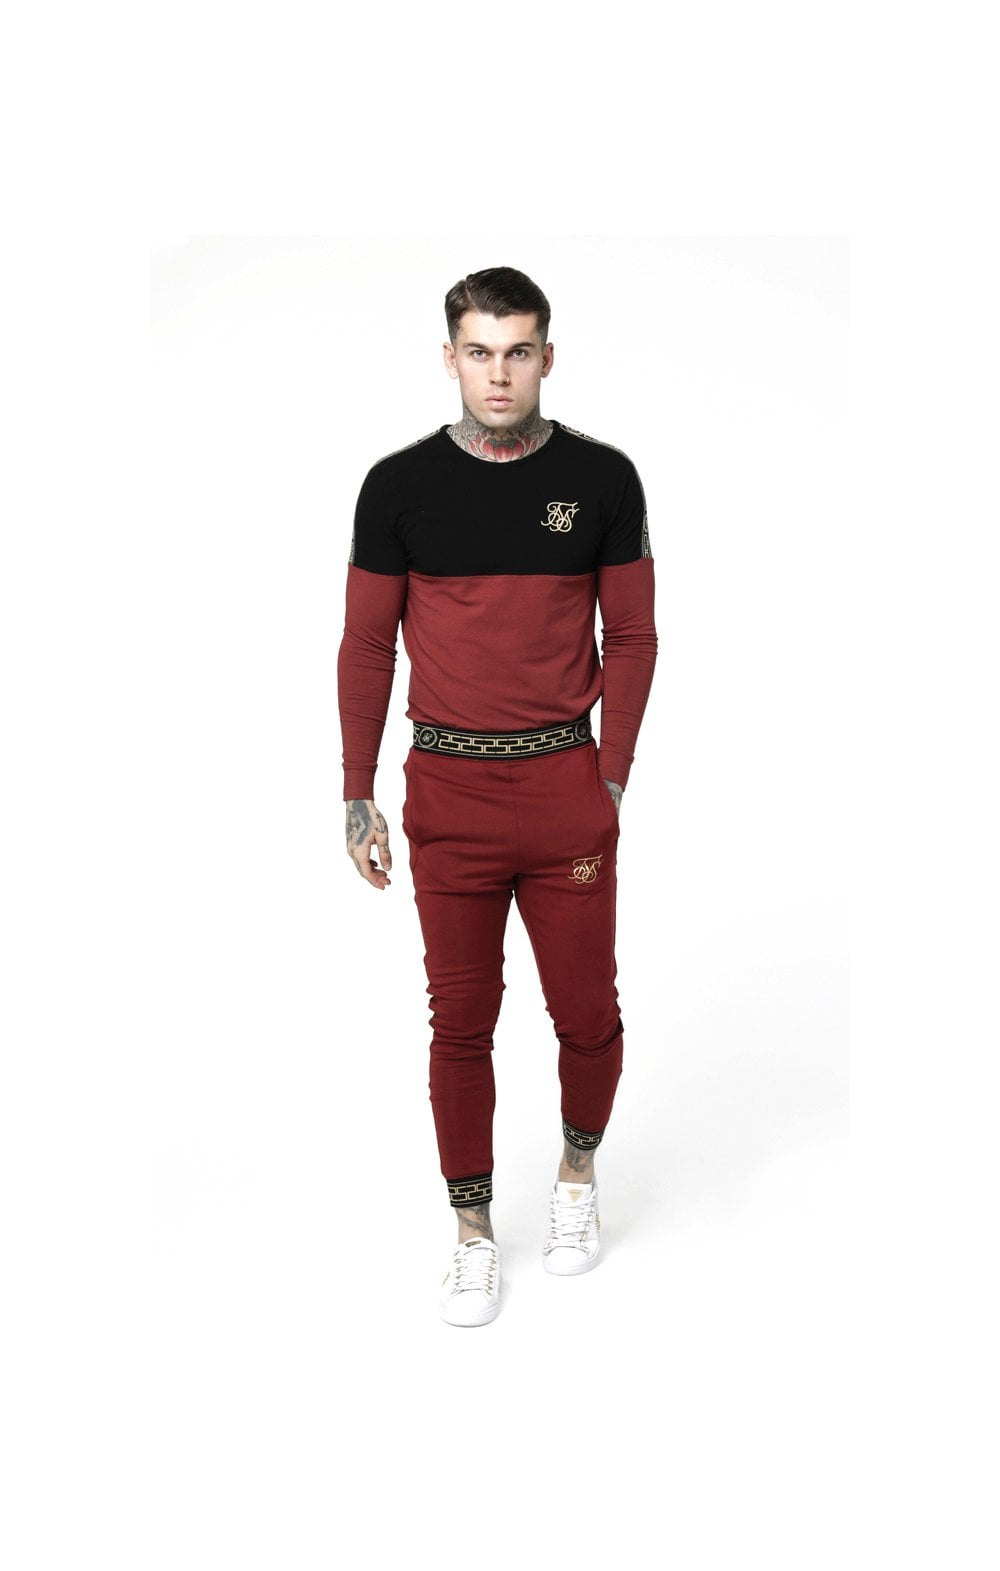 Load image into Gallery viewer, SikSilk L/S Cartel Cut & Sew Half Tape Gym Tee - Black & Red (3)